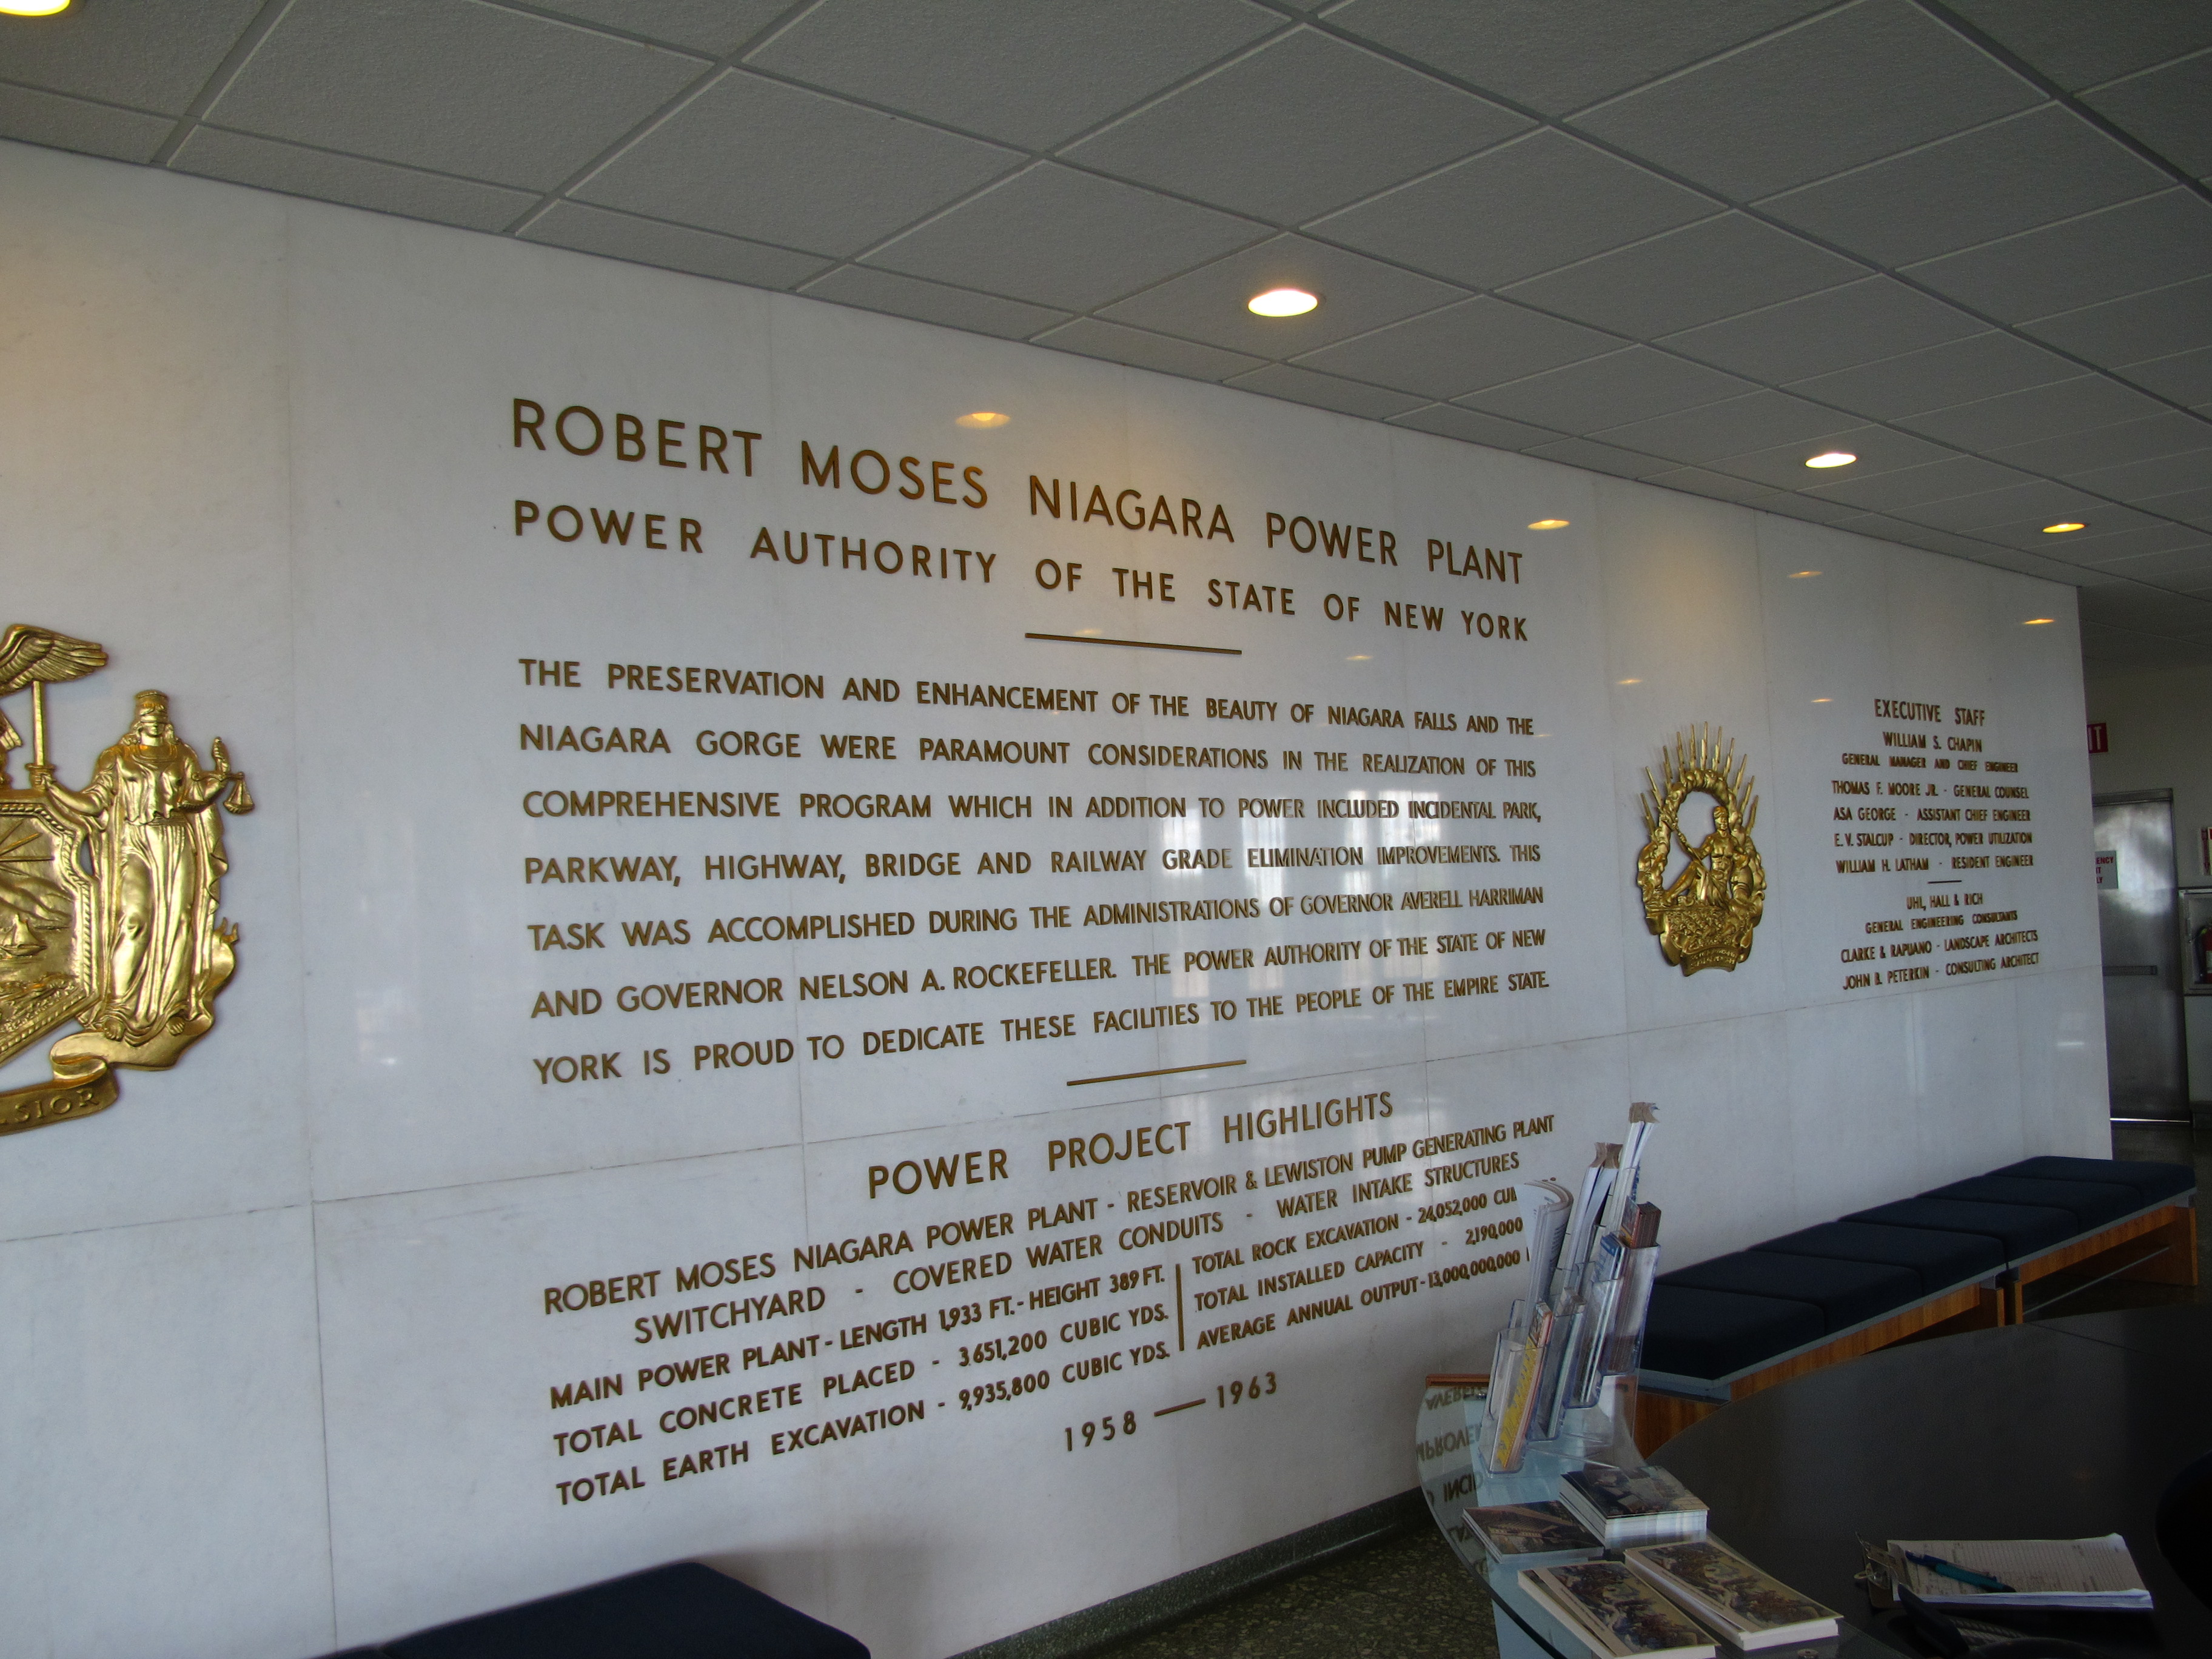 Roger Tory Peterson Institute of Natural History Niagara Falls and Western New York, Niagara Power Project Visitors Center, Niagara Falls and Western ...